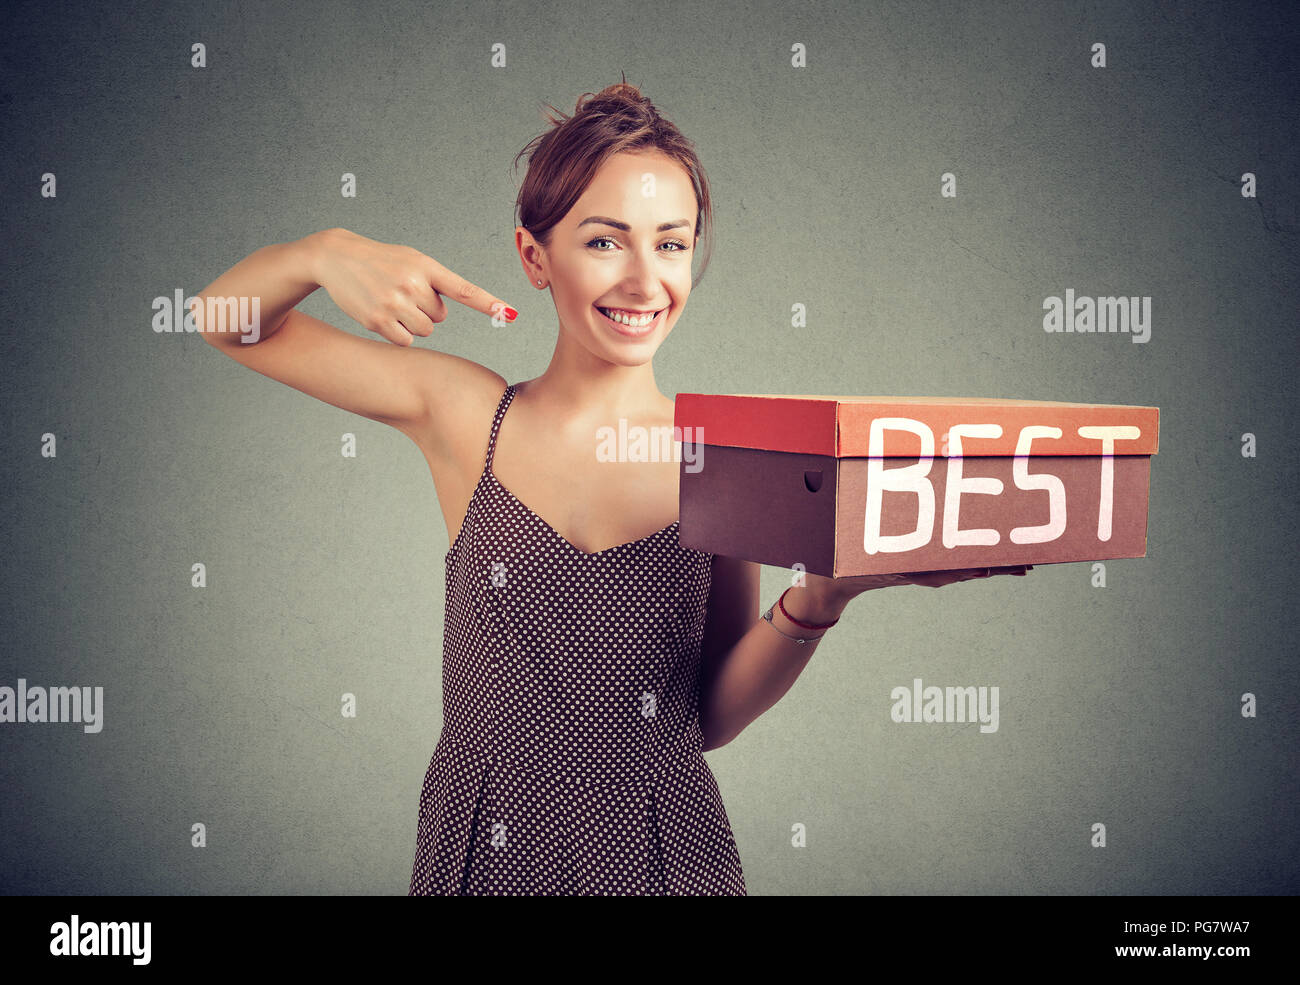 Smiling young saleswoman advertising best product - Stock Image